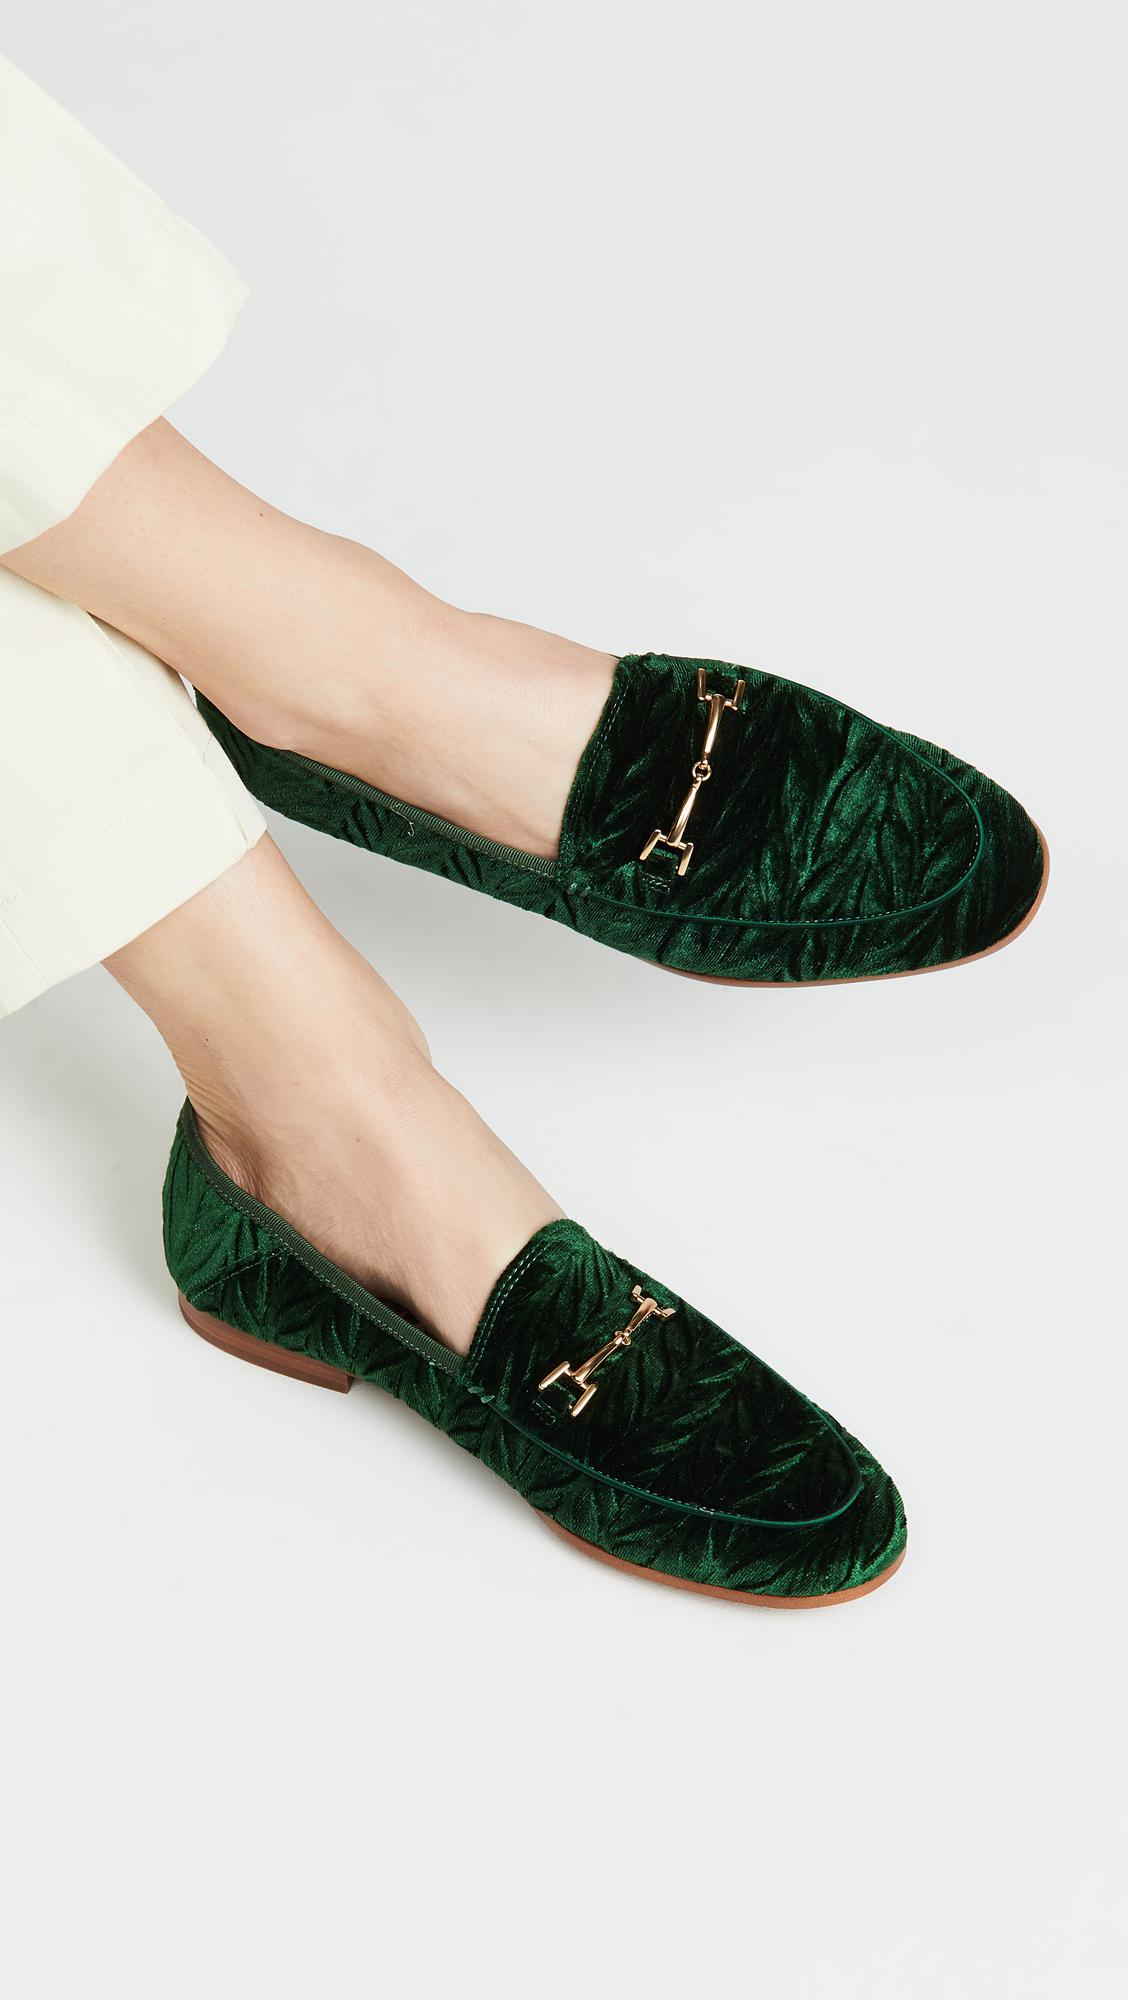 c4734d82208715 Lyst - Sam Edelman Loraine Loafers in Green